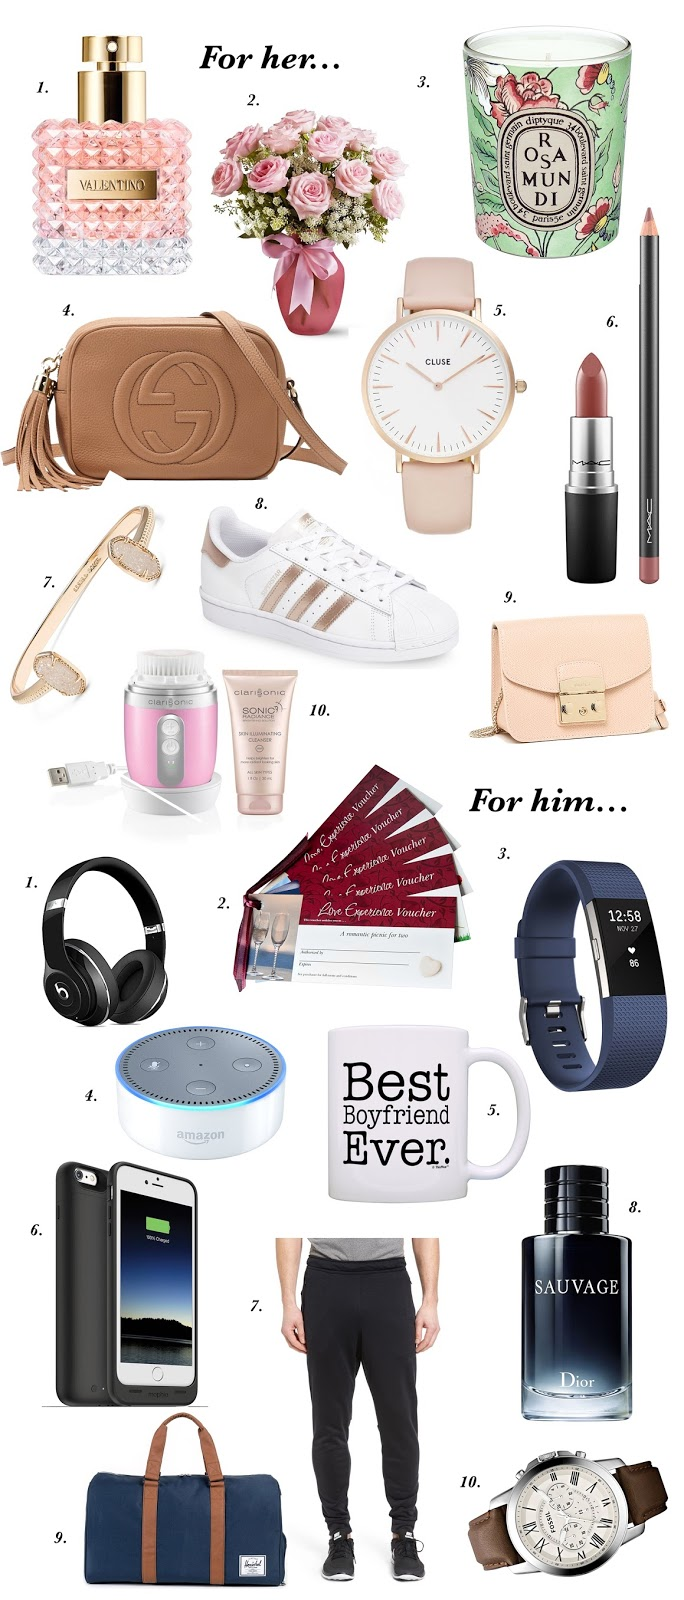 20 Valentine's Day Gift Ideas for him & her - Hapa Time